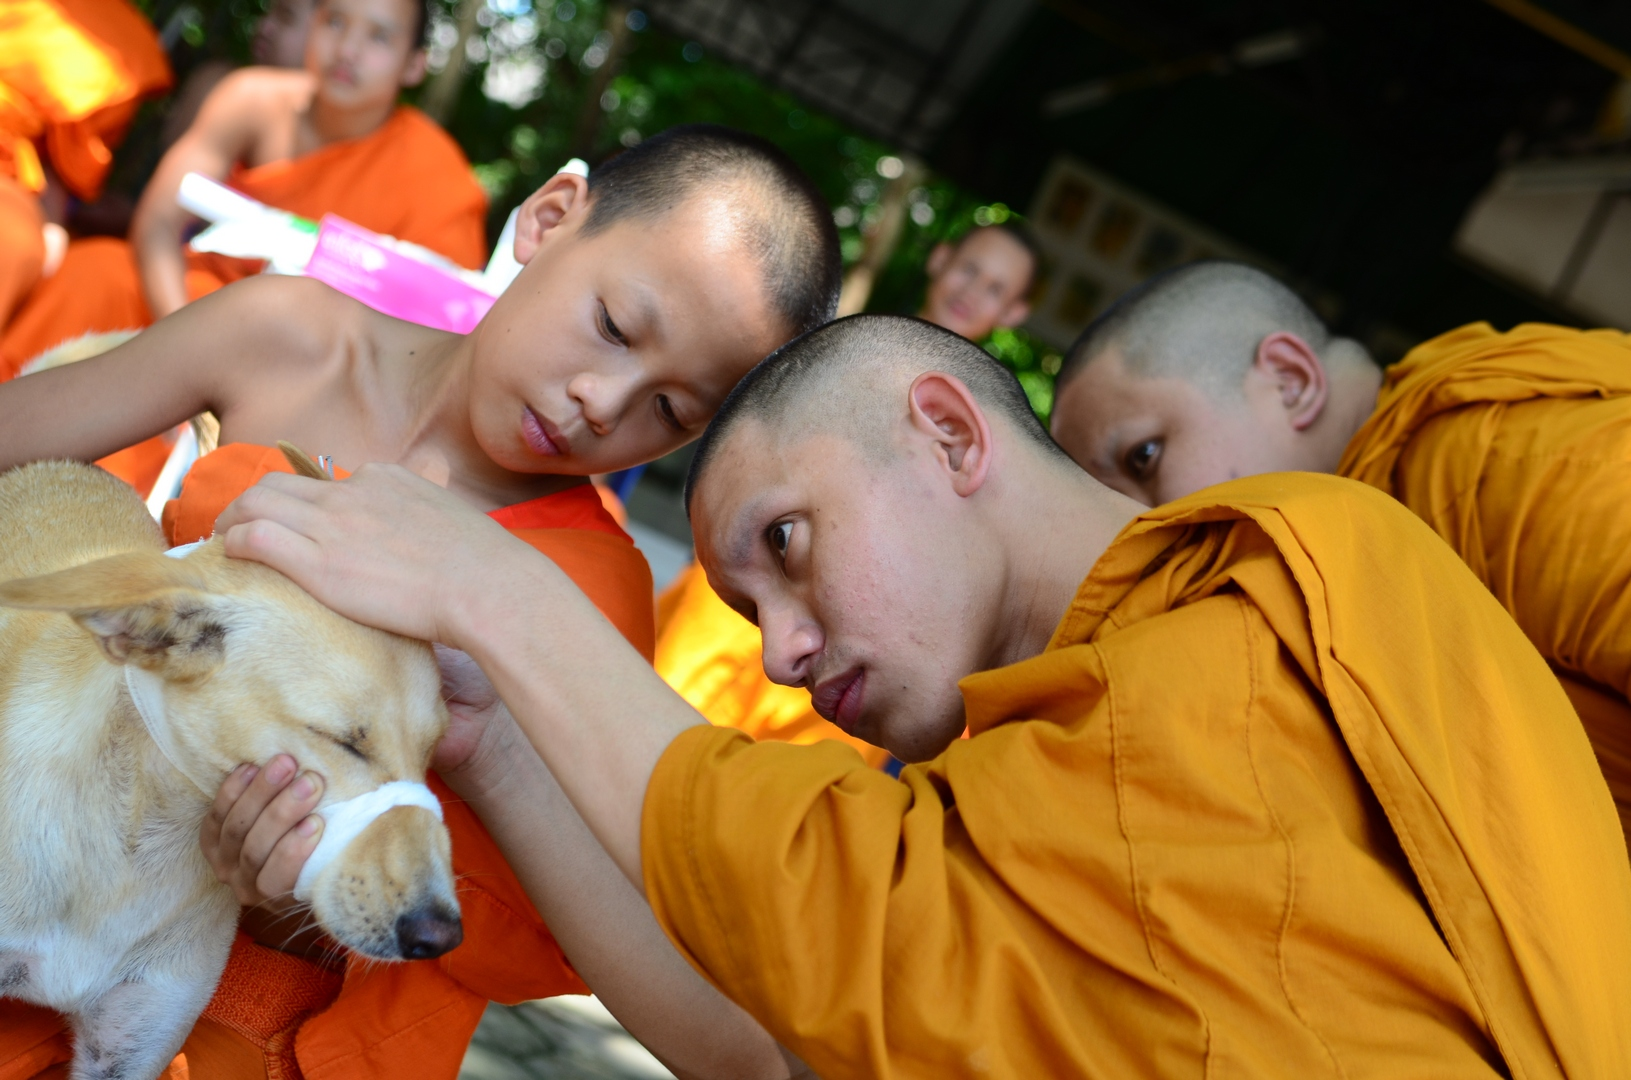 Humane handling and care training for monks